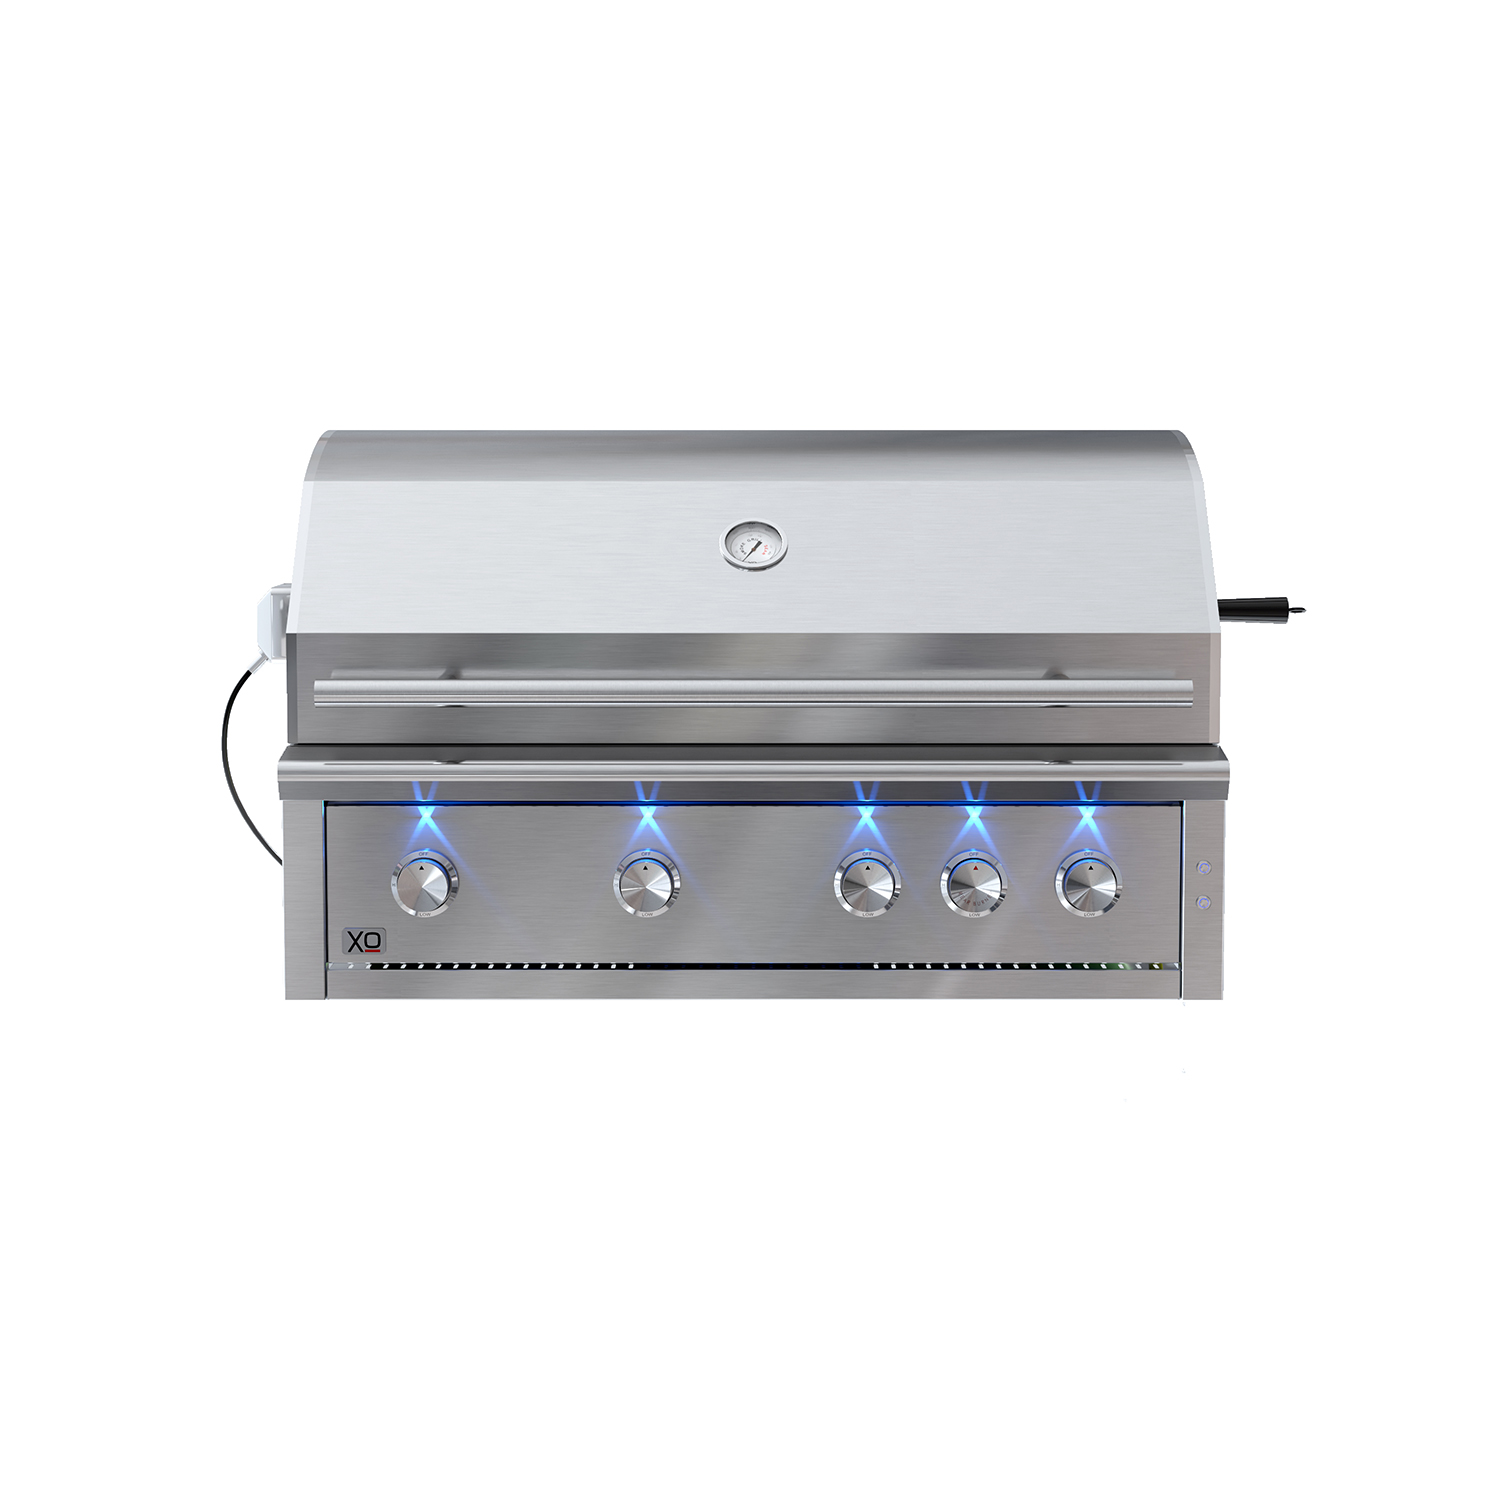 XO Appliances 42 in Grill 4 Burner w/ Rotiss Burner - Natural Gas